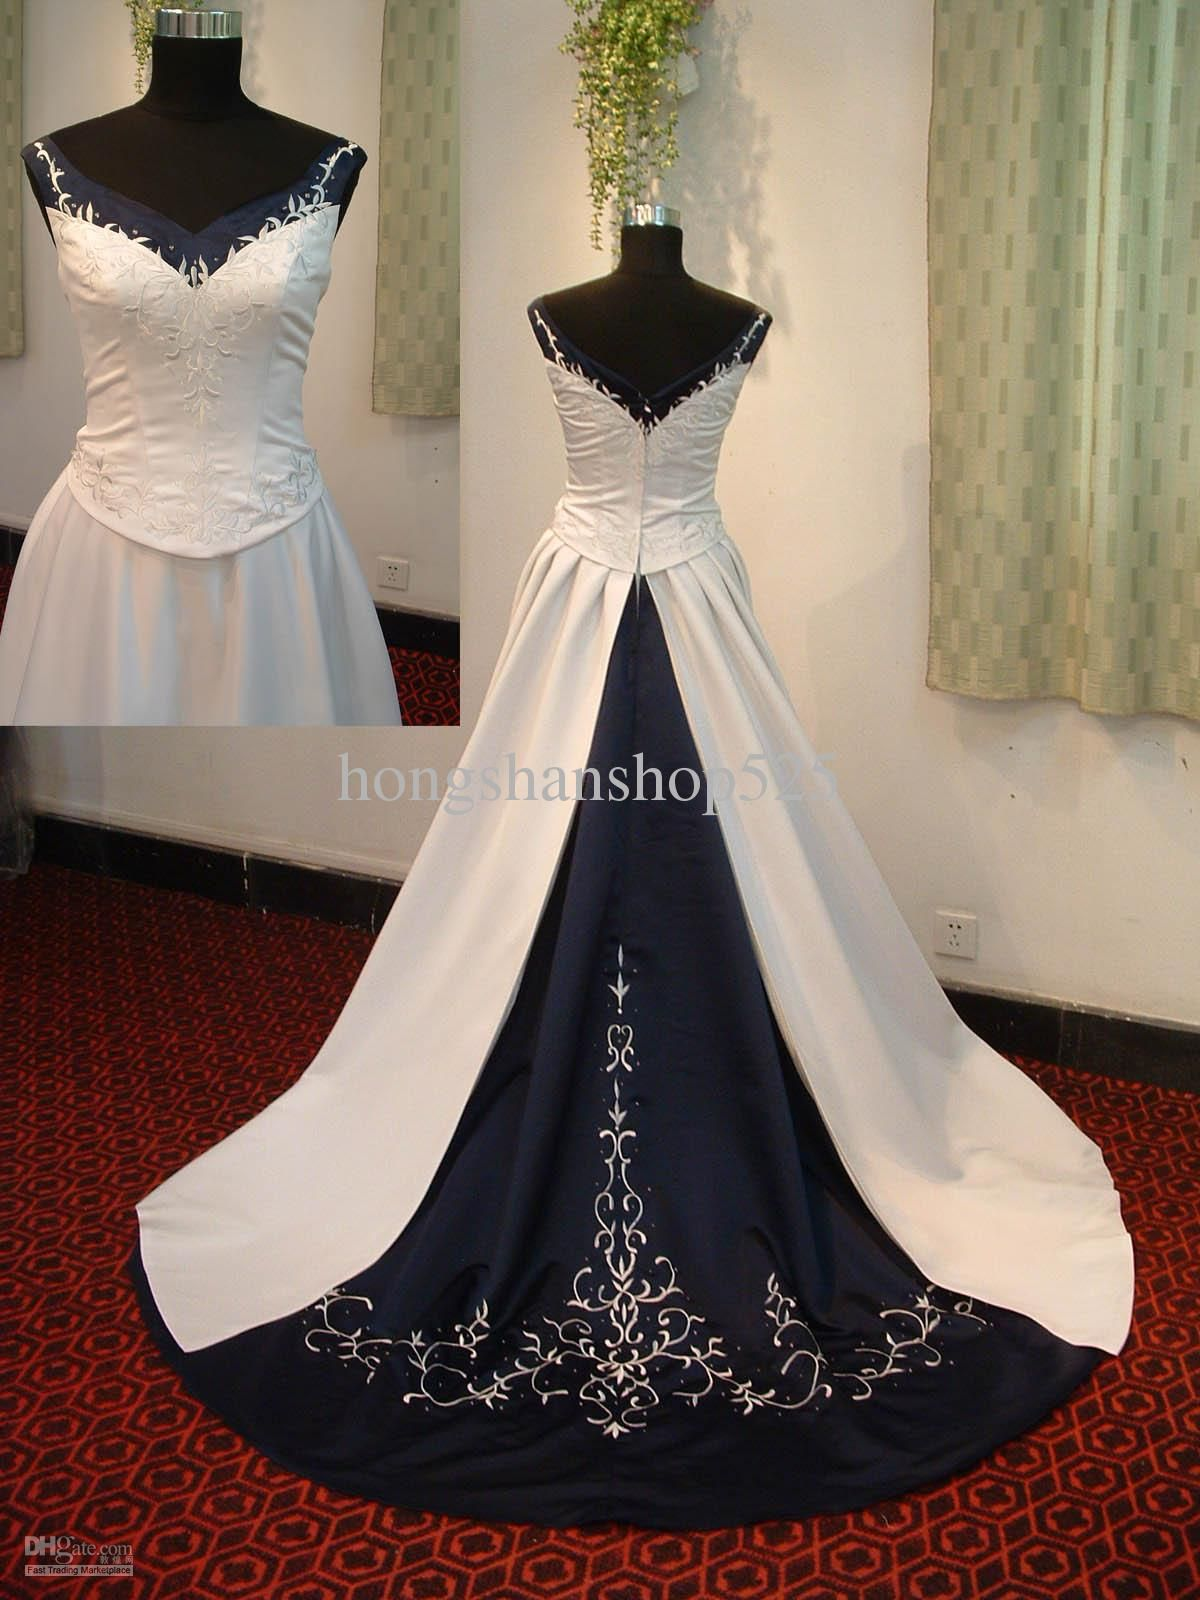 Black Wedding Dress Wedding Dream Dresses Pinterest